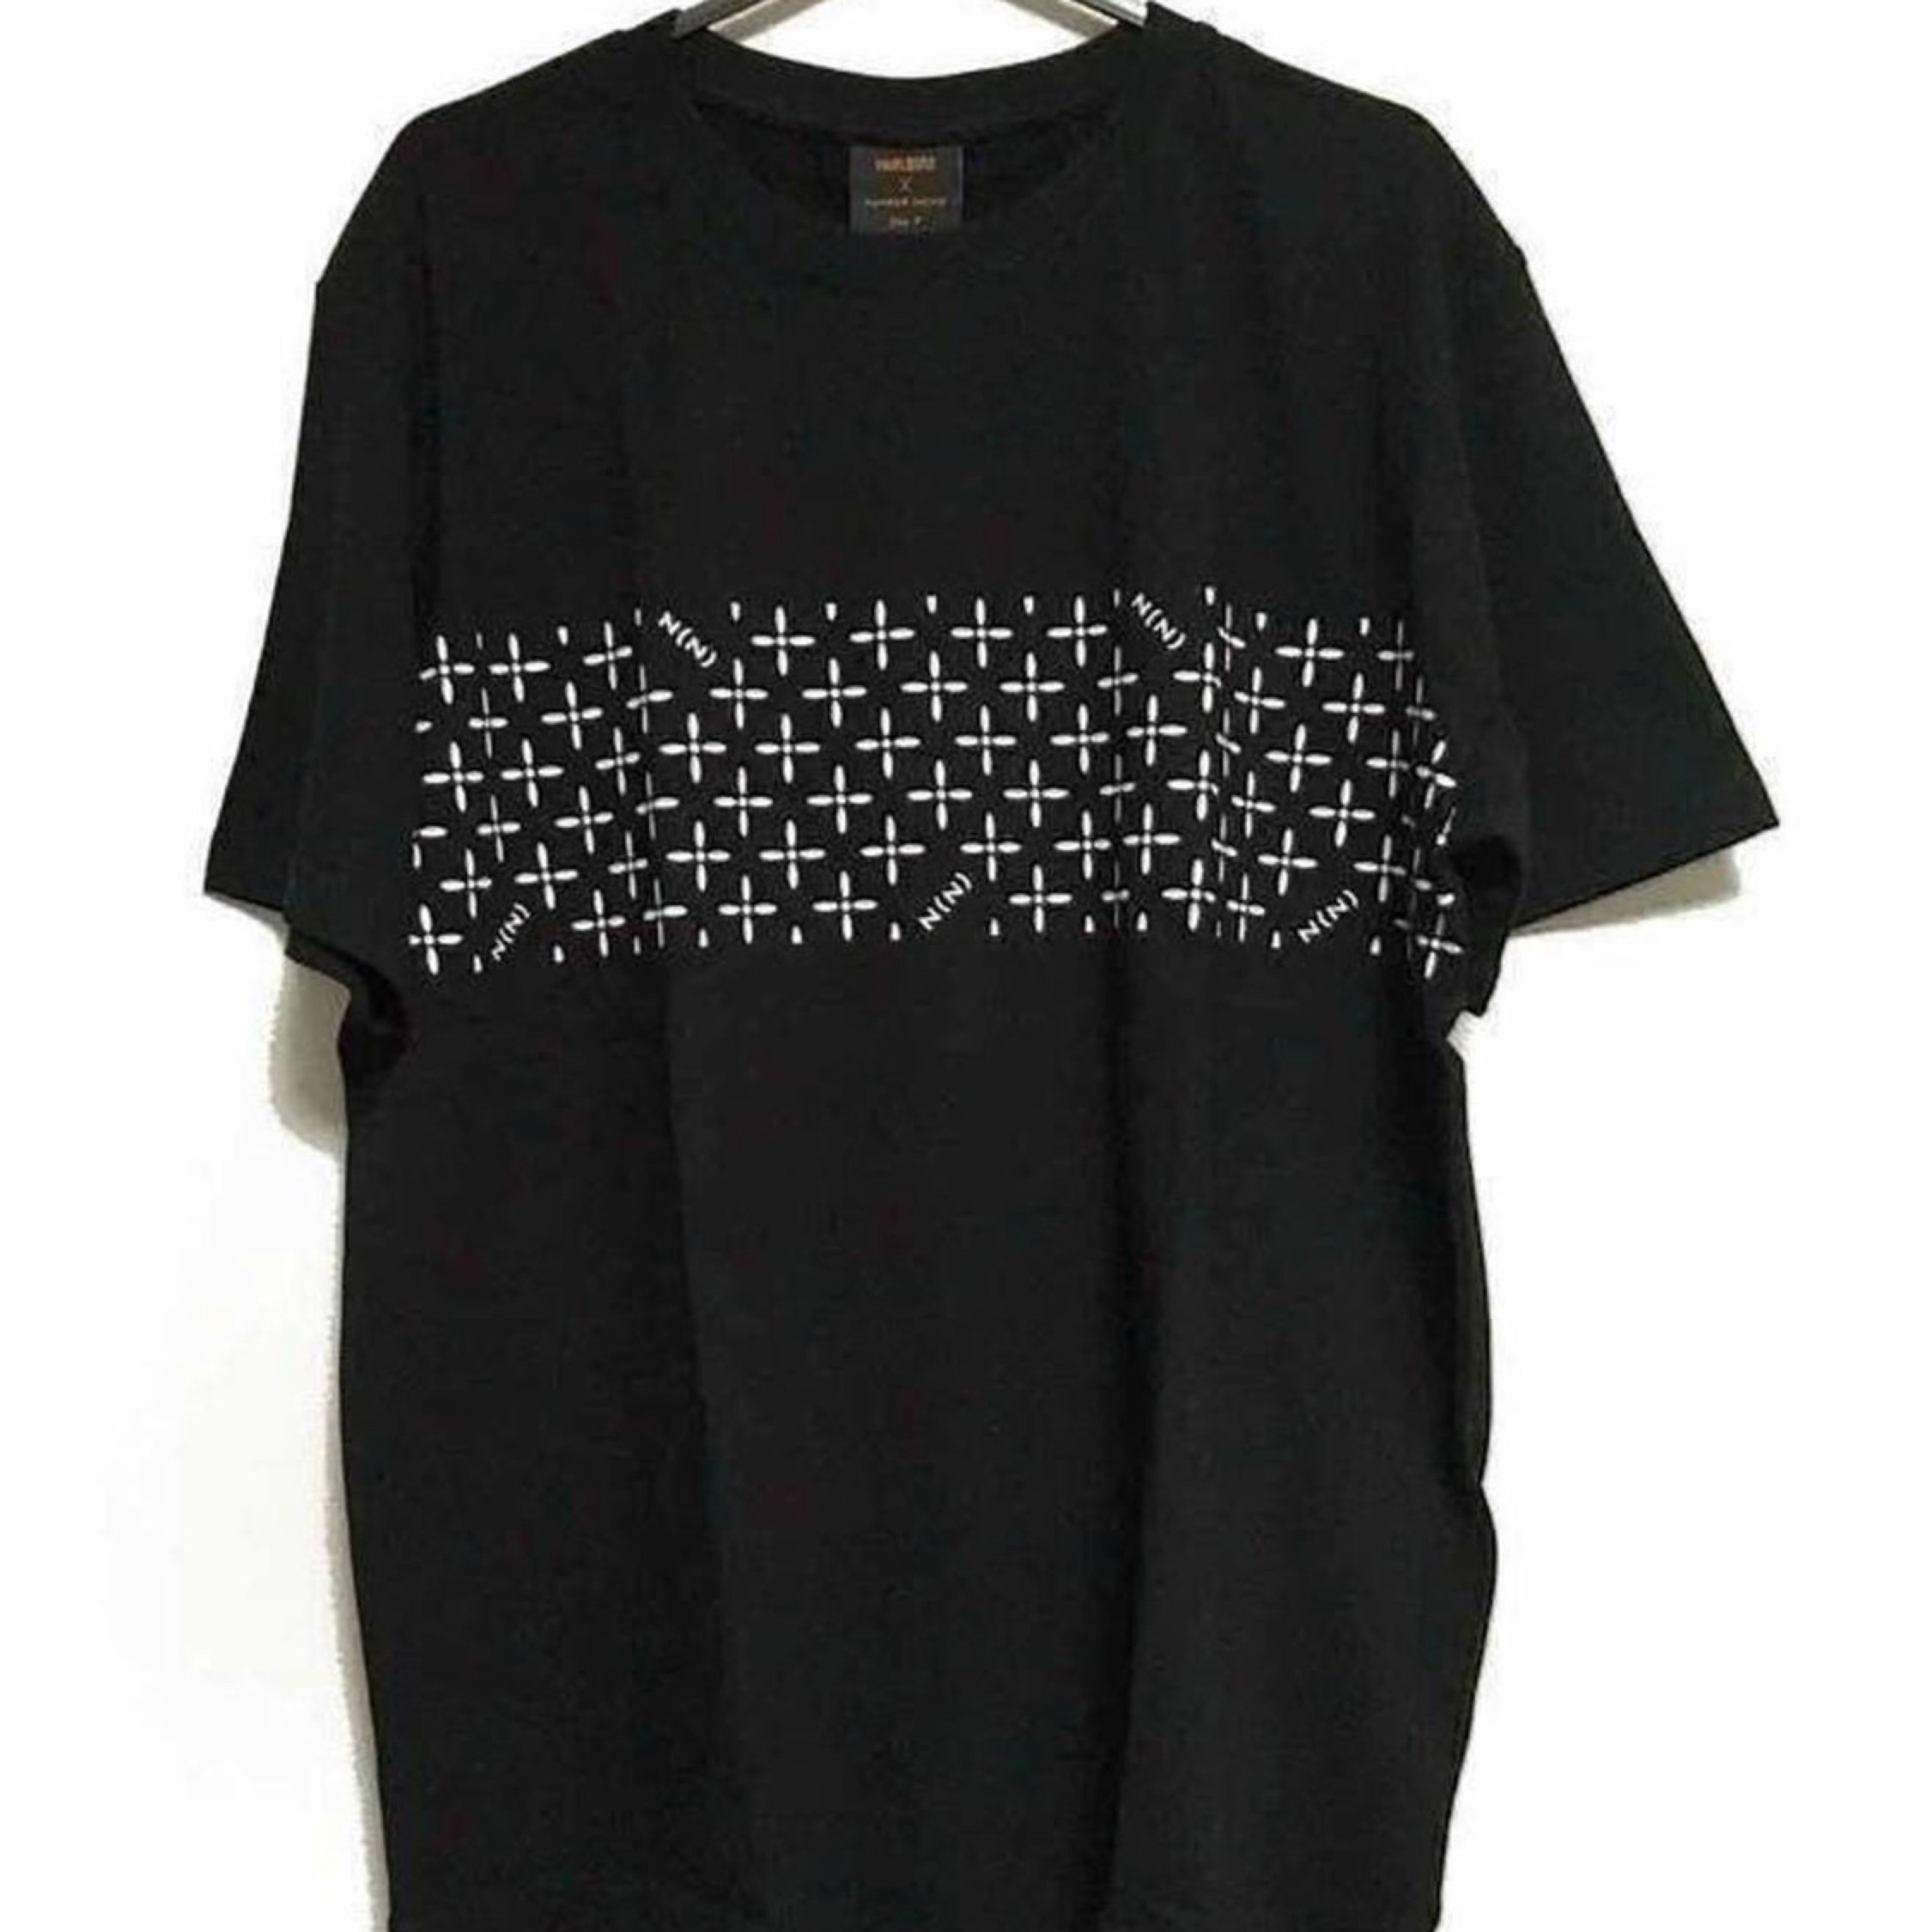 Number Nine Pyramids And Crosses Tee Black New